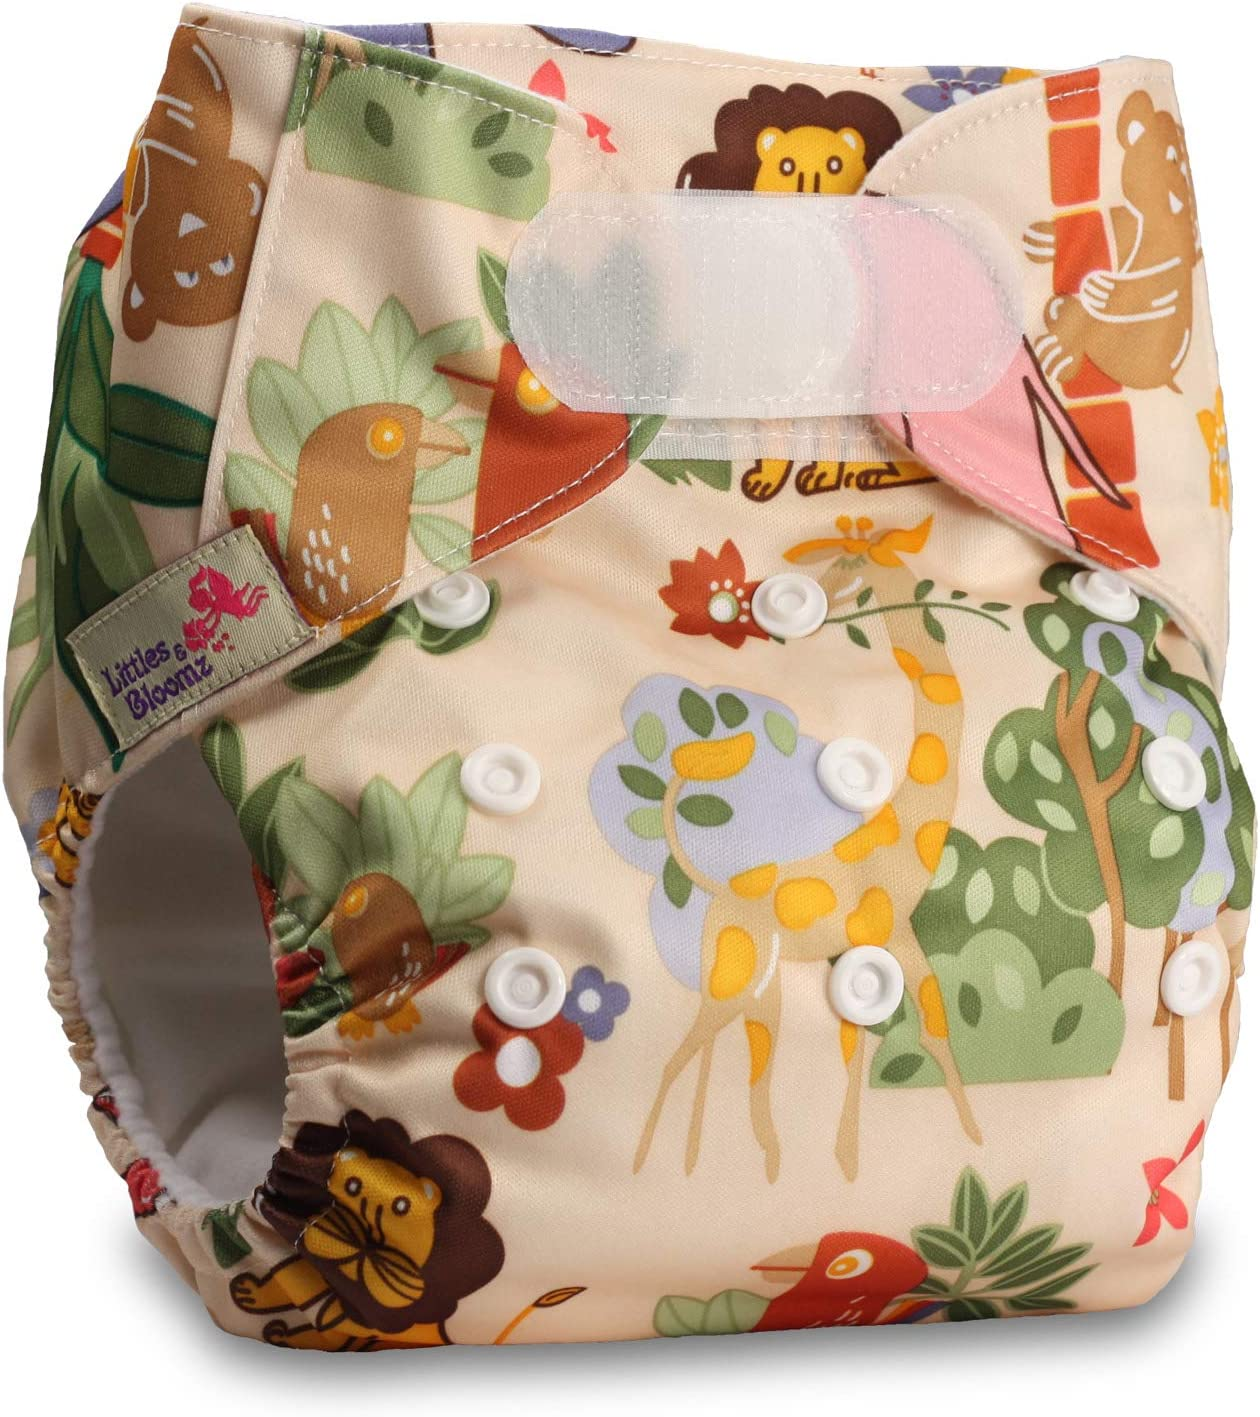 Reusable Pocket Cloth Nappy with 5 Bamboo Inserts Littles /& Bloomz P503bb1 Fastener: Popper